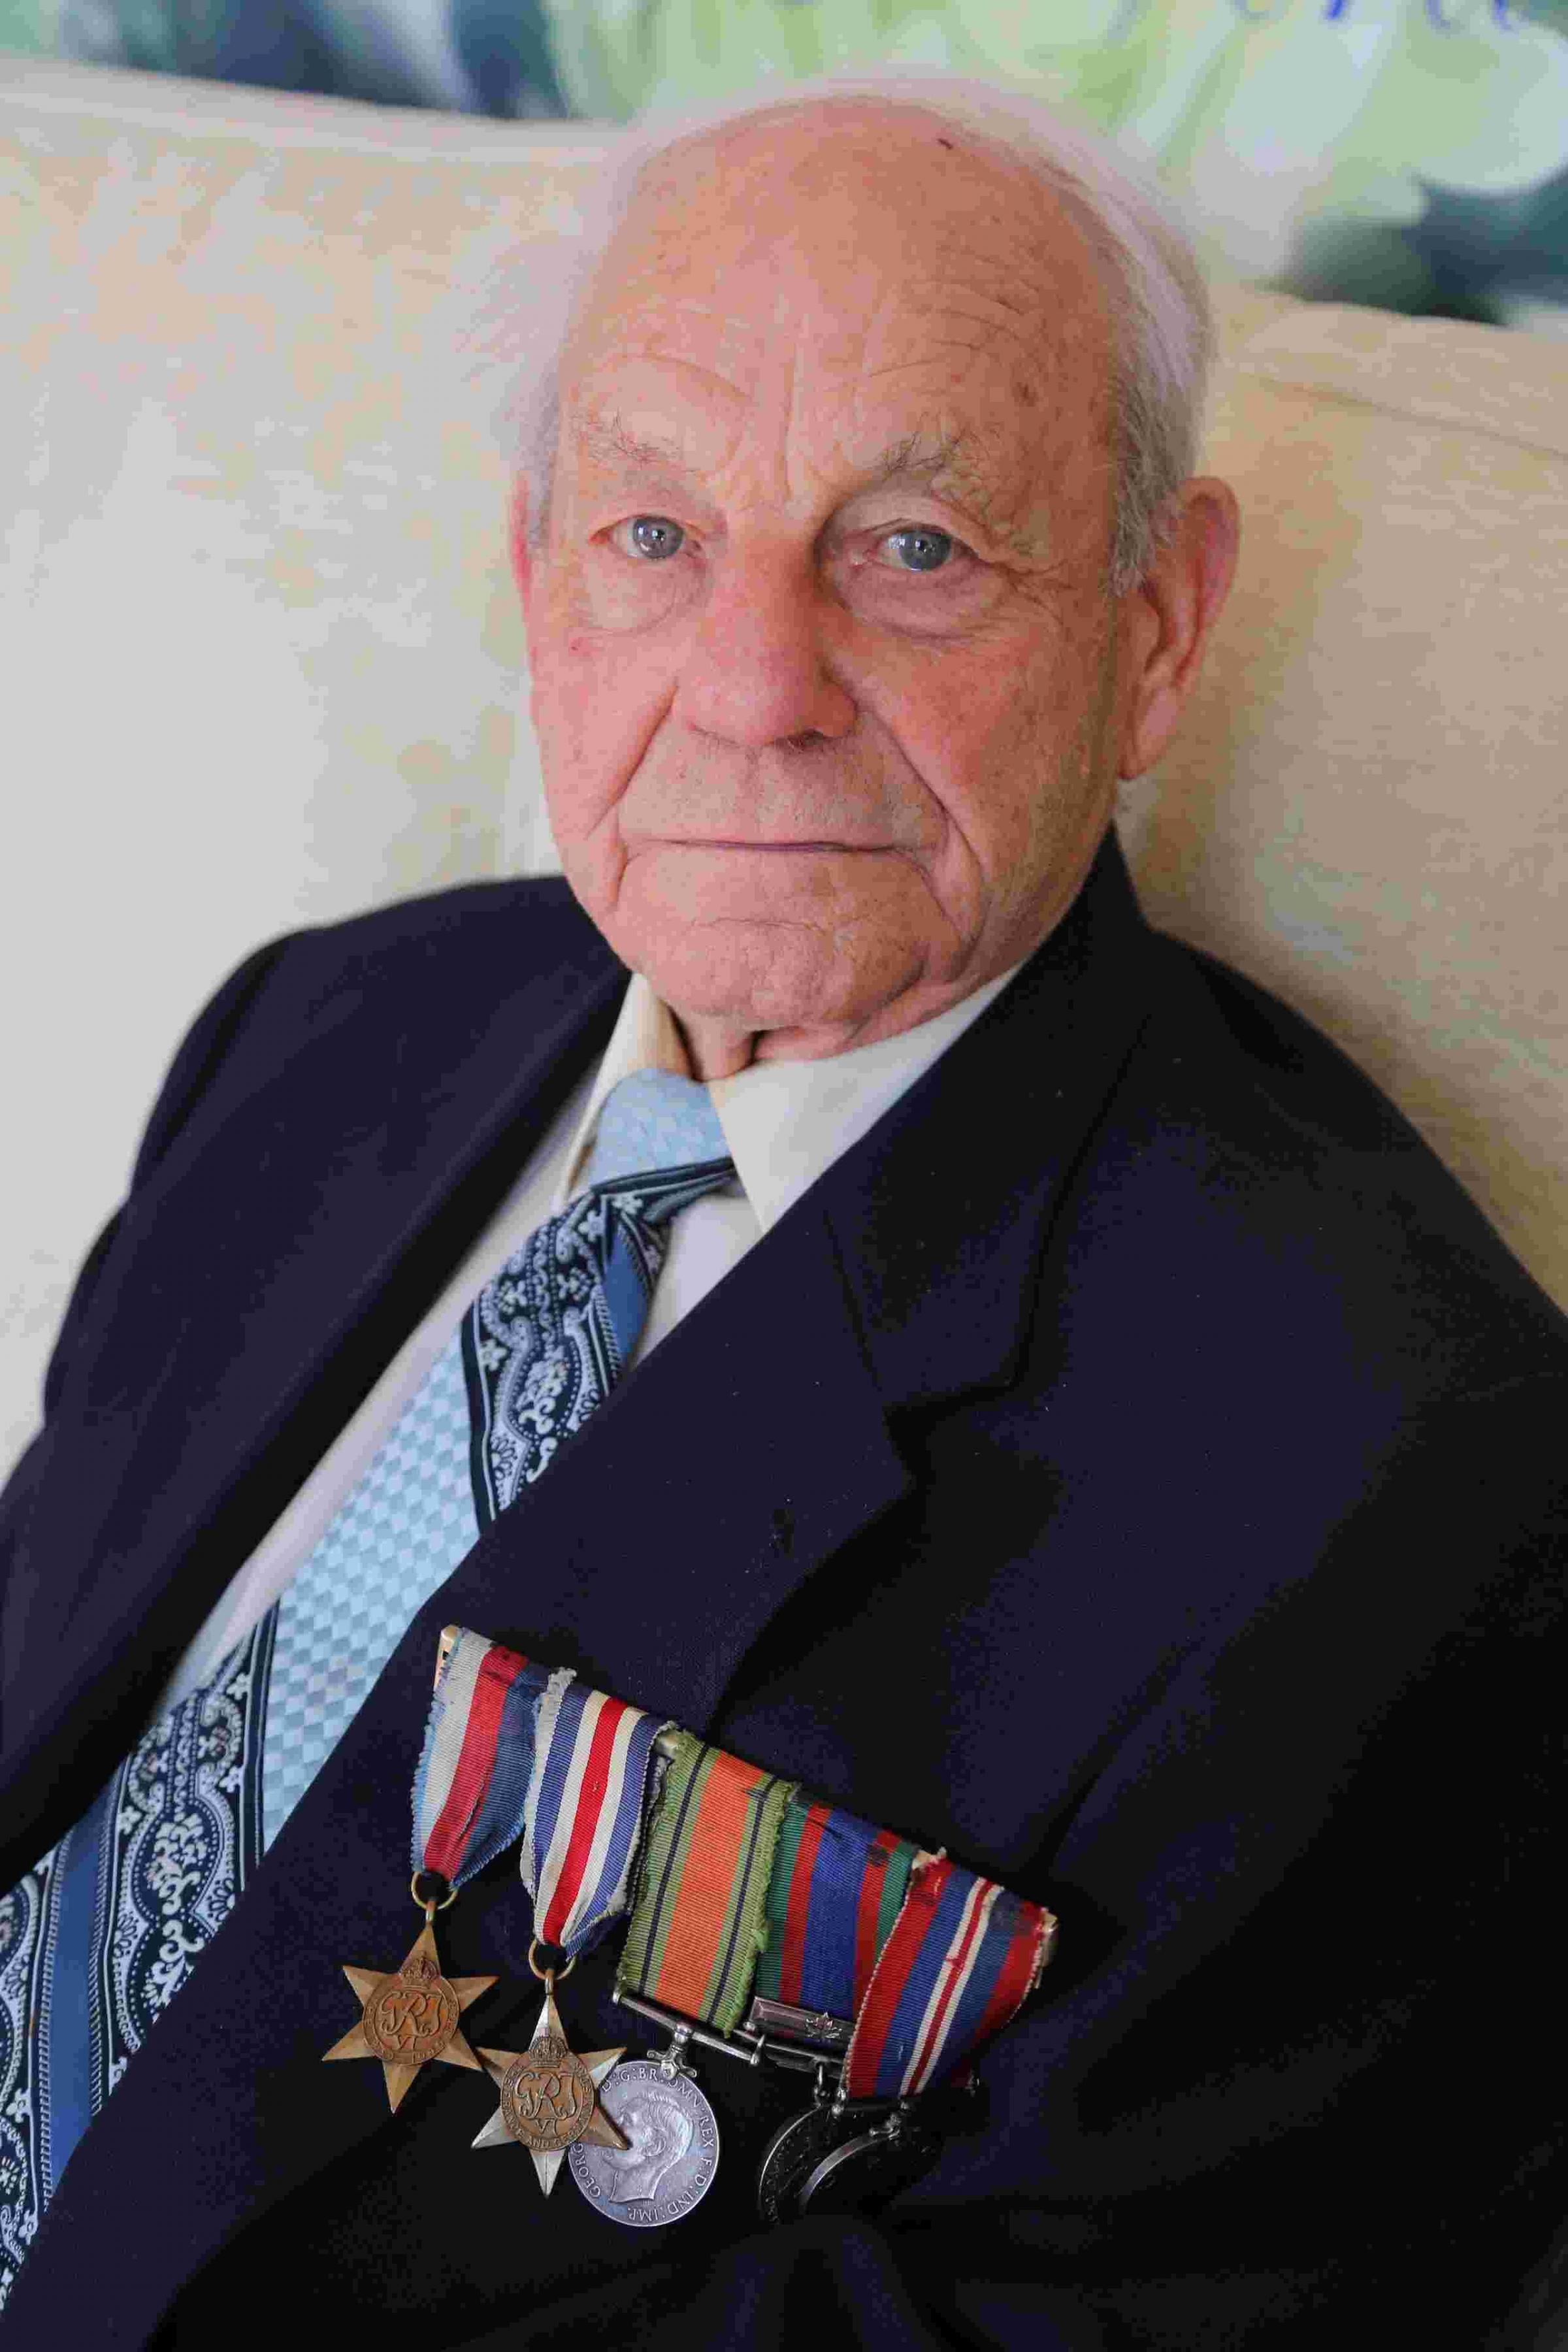 VIDEO: Amazing exploits of D-Day veteran Bob Roberts, the second man to set foot on Juno beach